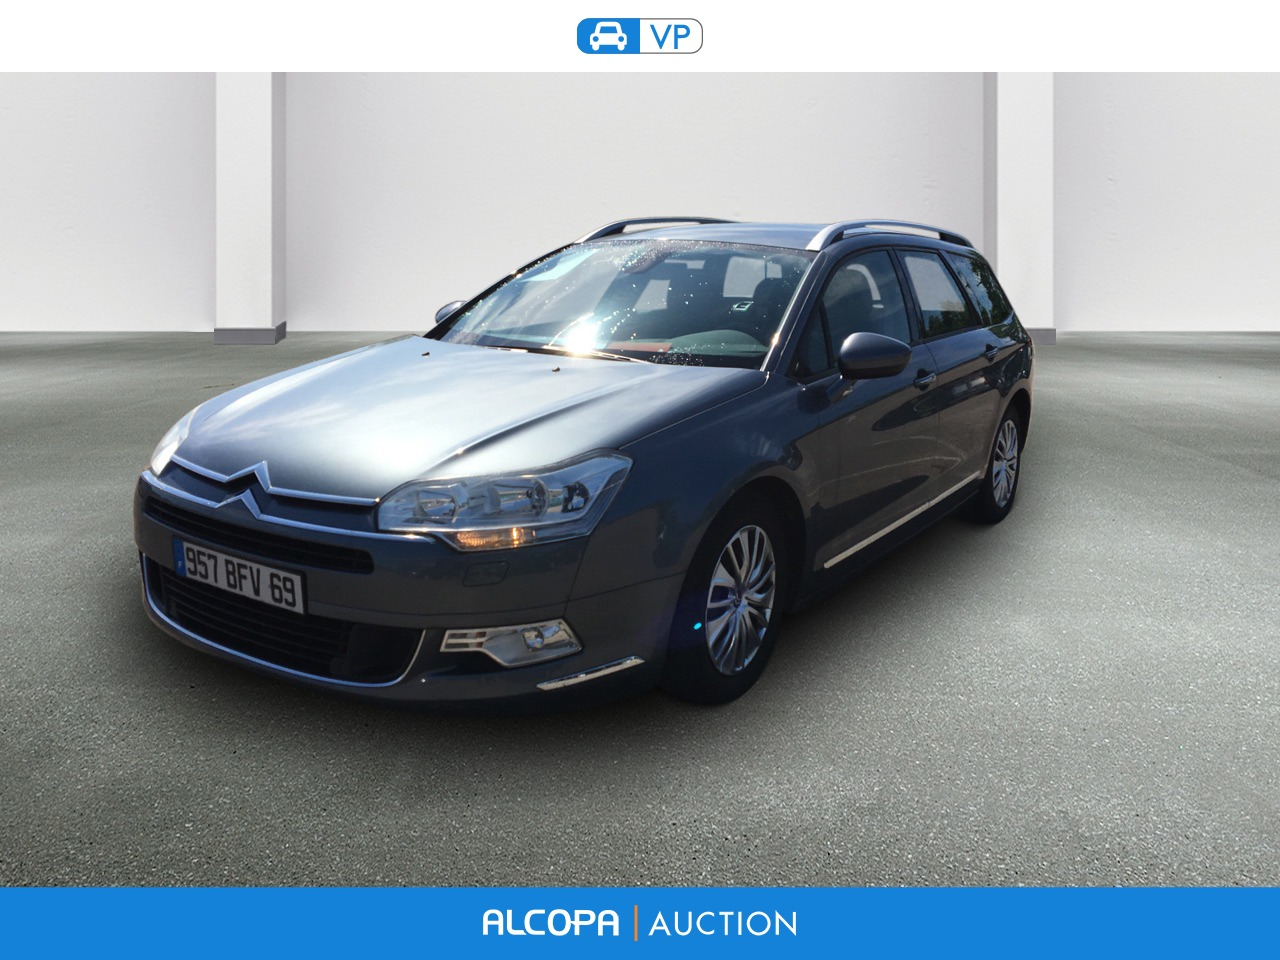 citroen c5 tourer c5 tourer hdi 140 confort bv6 alcopa auction. Black Bedroom Furniture Sets. Home Design Ideas